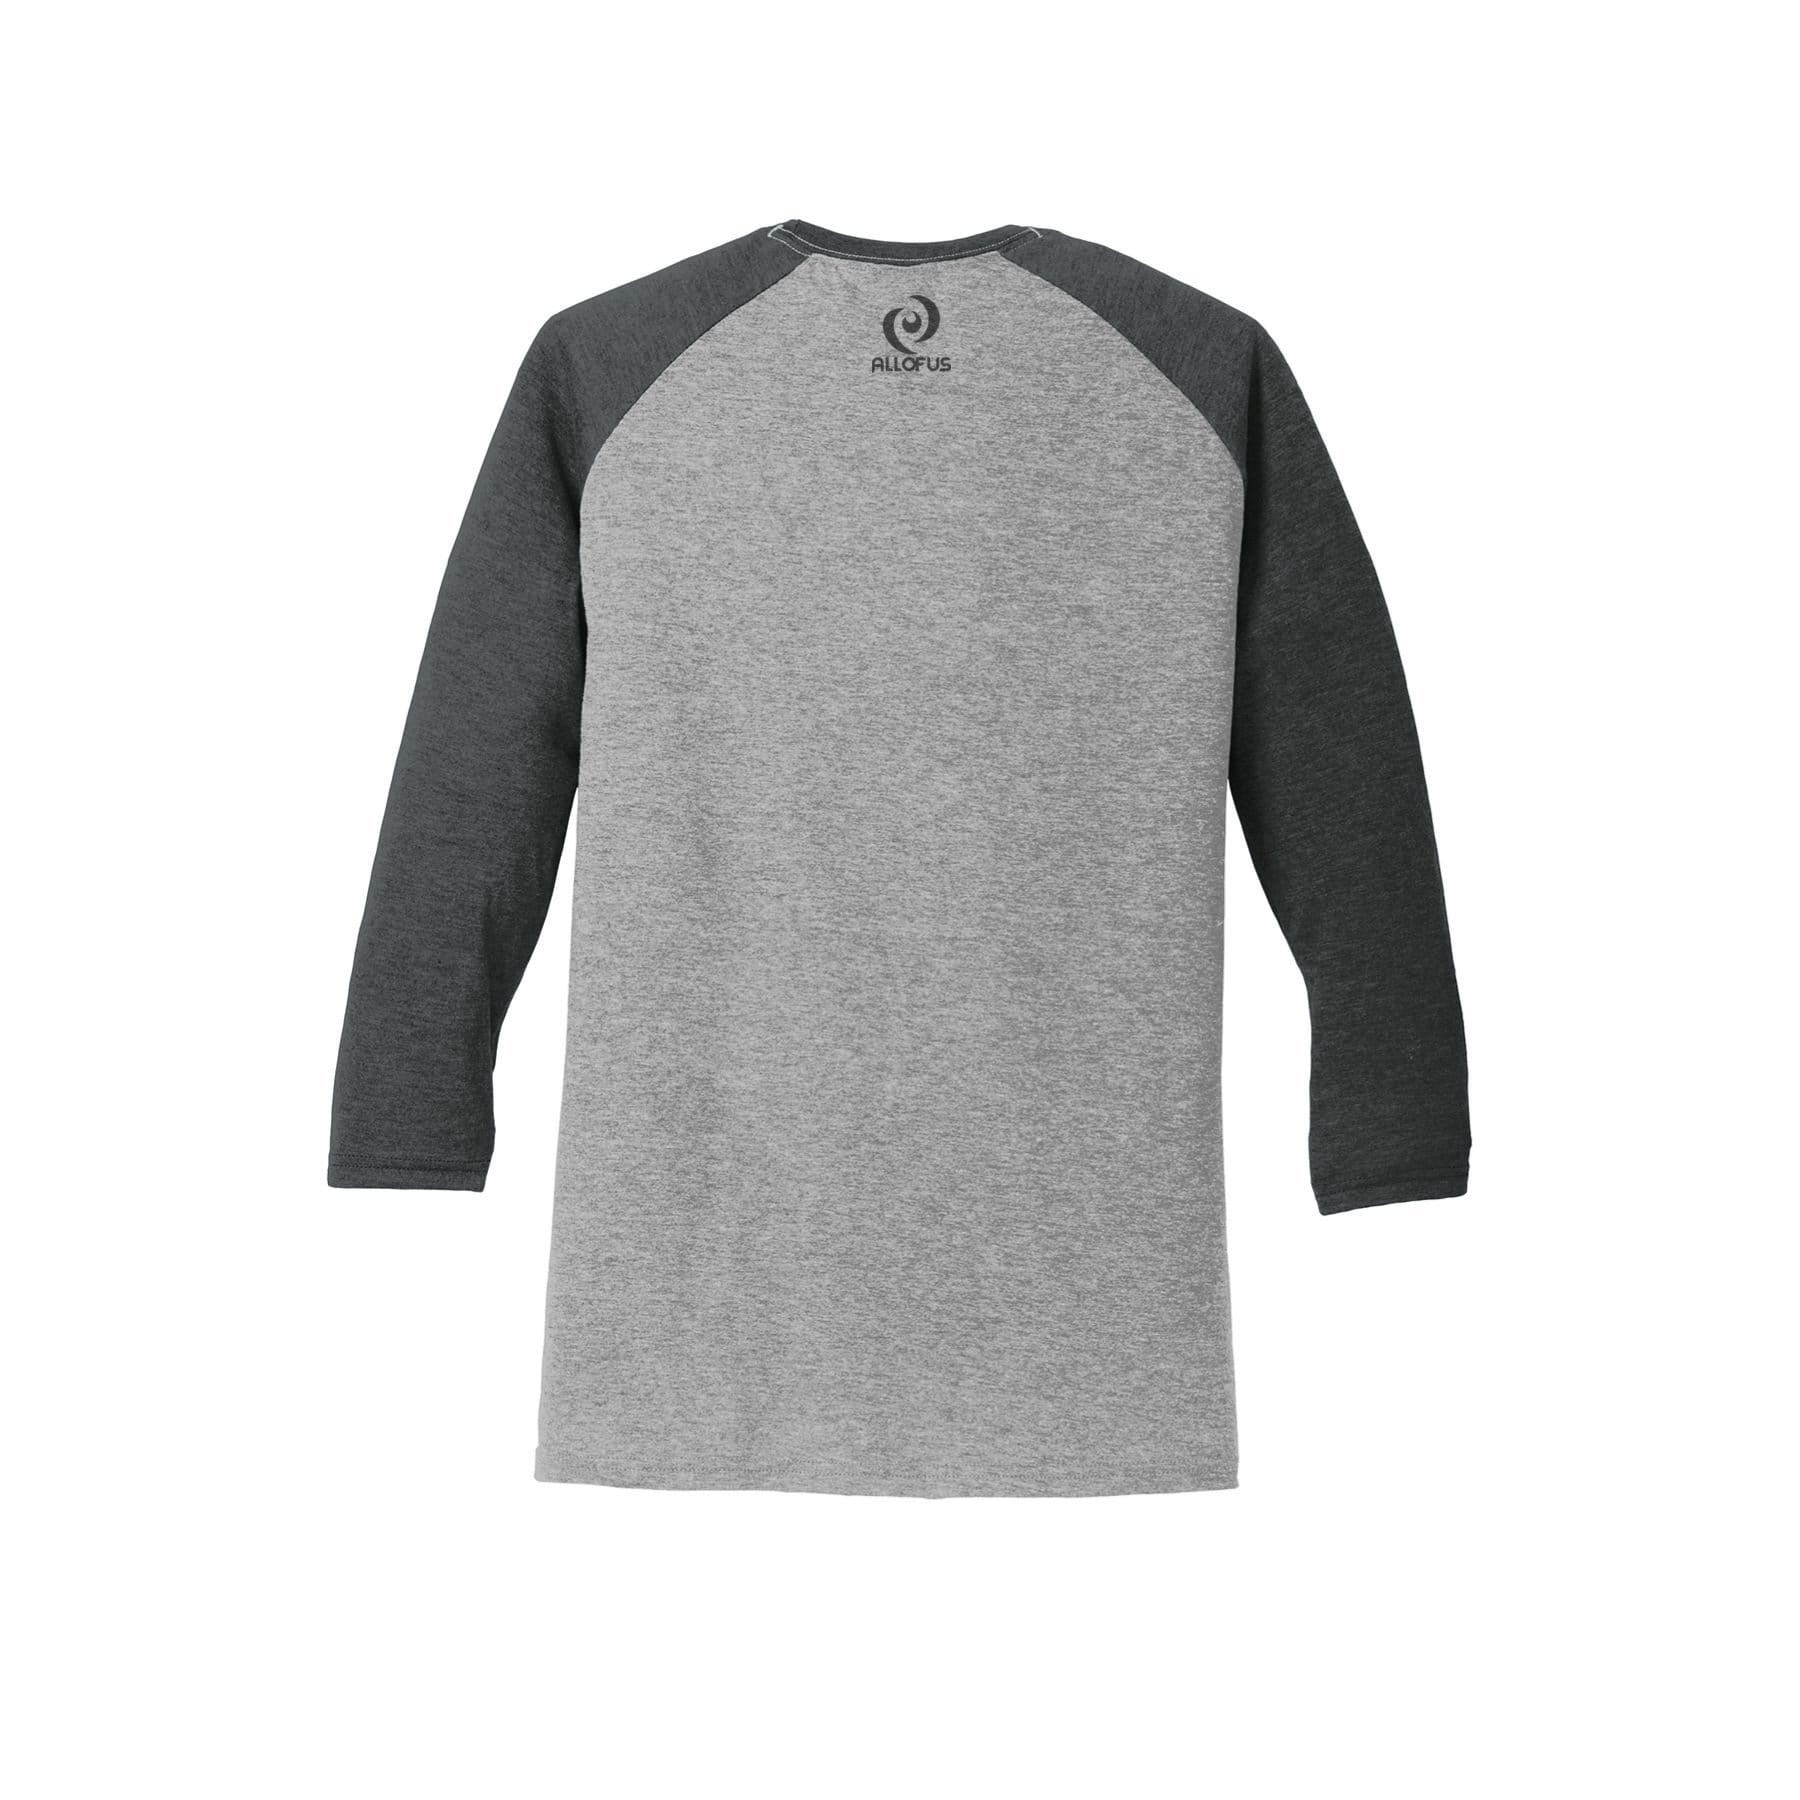 a16df3197 Men's Grey/Black All of Us Tri Blend ¾ Sleeve Raglan Jersey